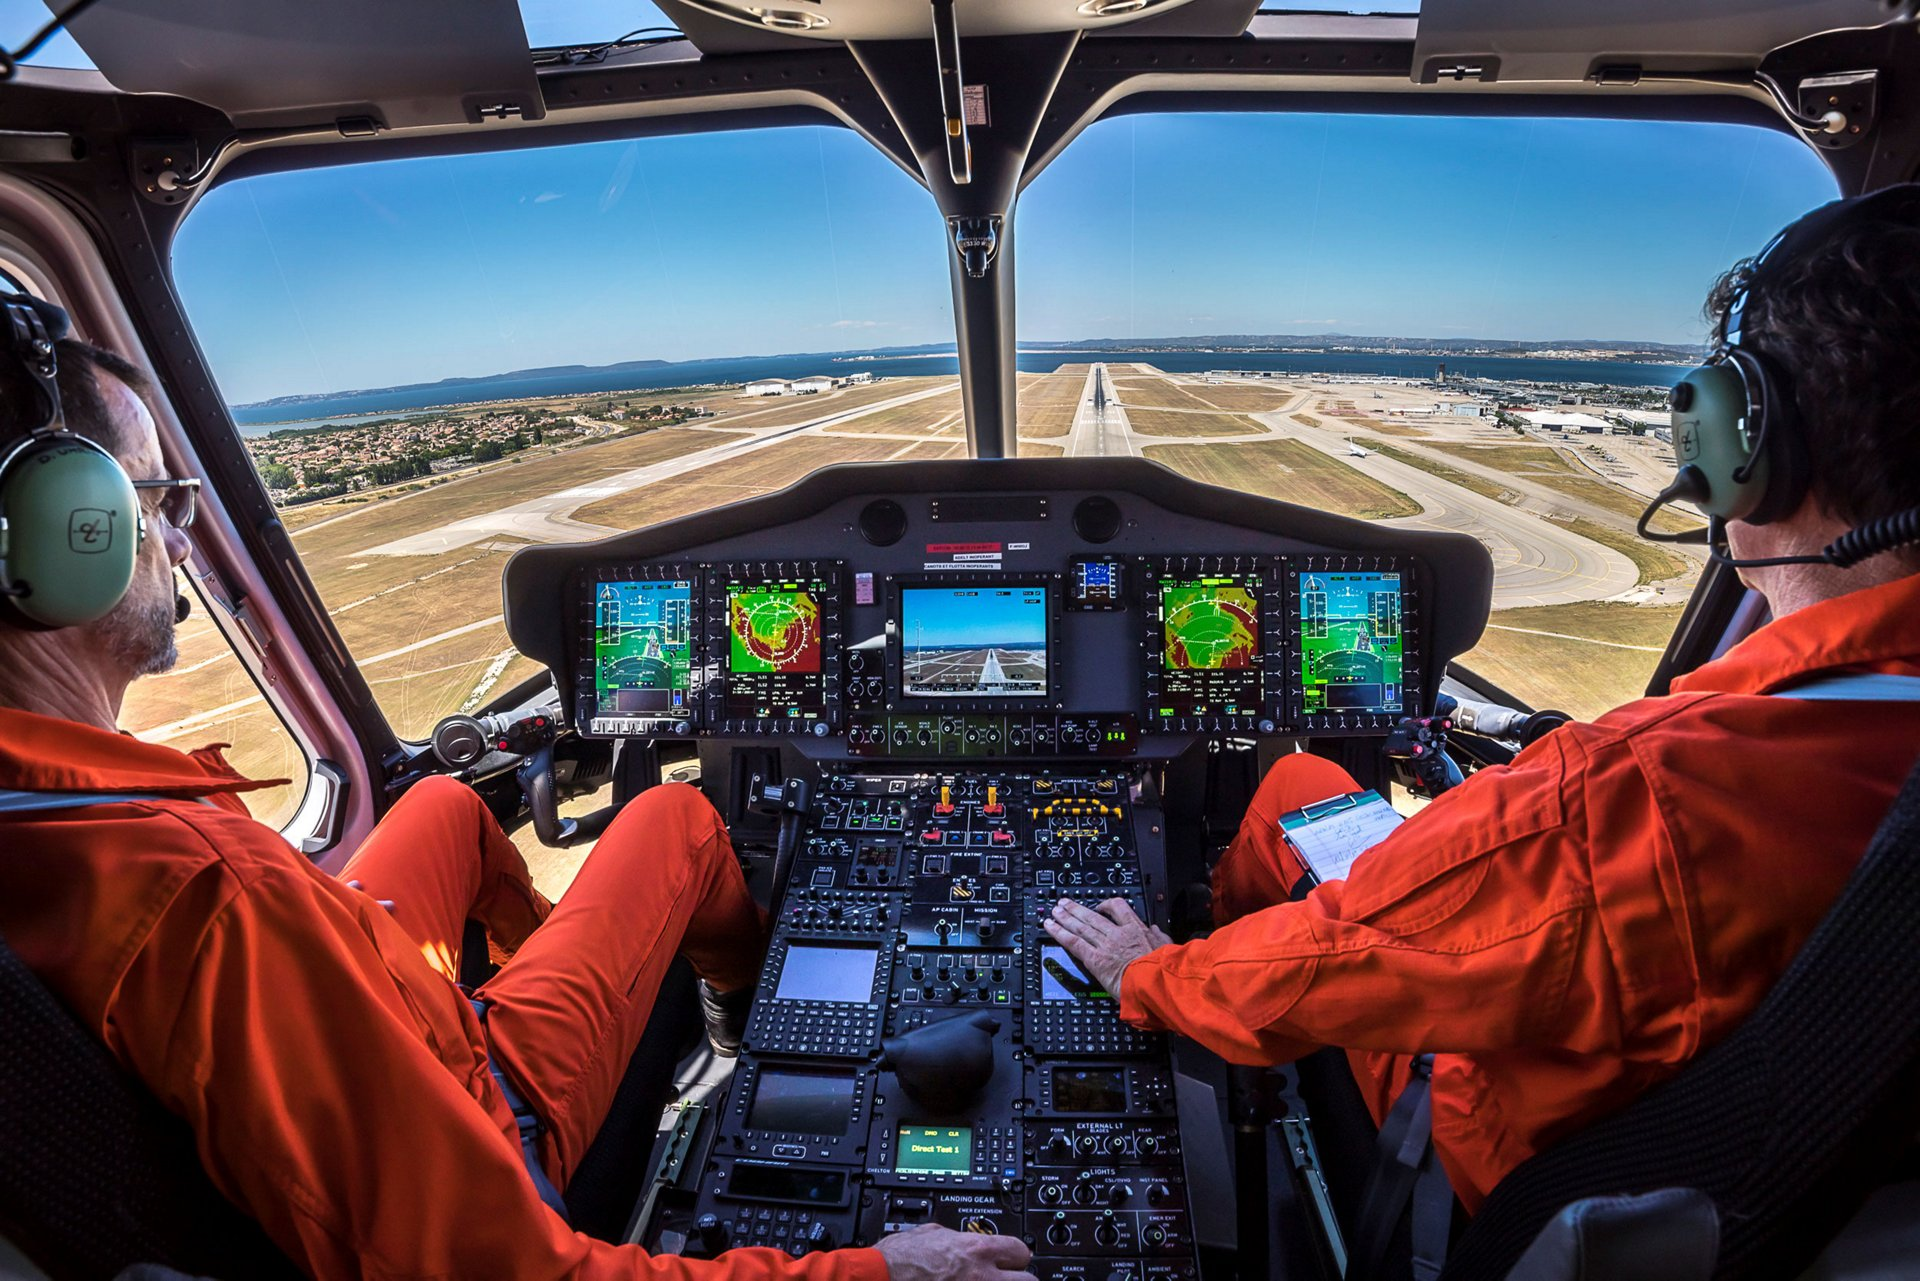 A view of two pilots behind the controls of a rotorcraft incorporating Airbus' Helionix avionics suite.